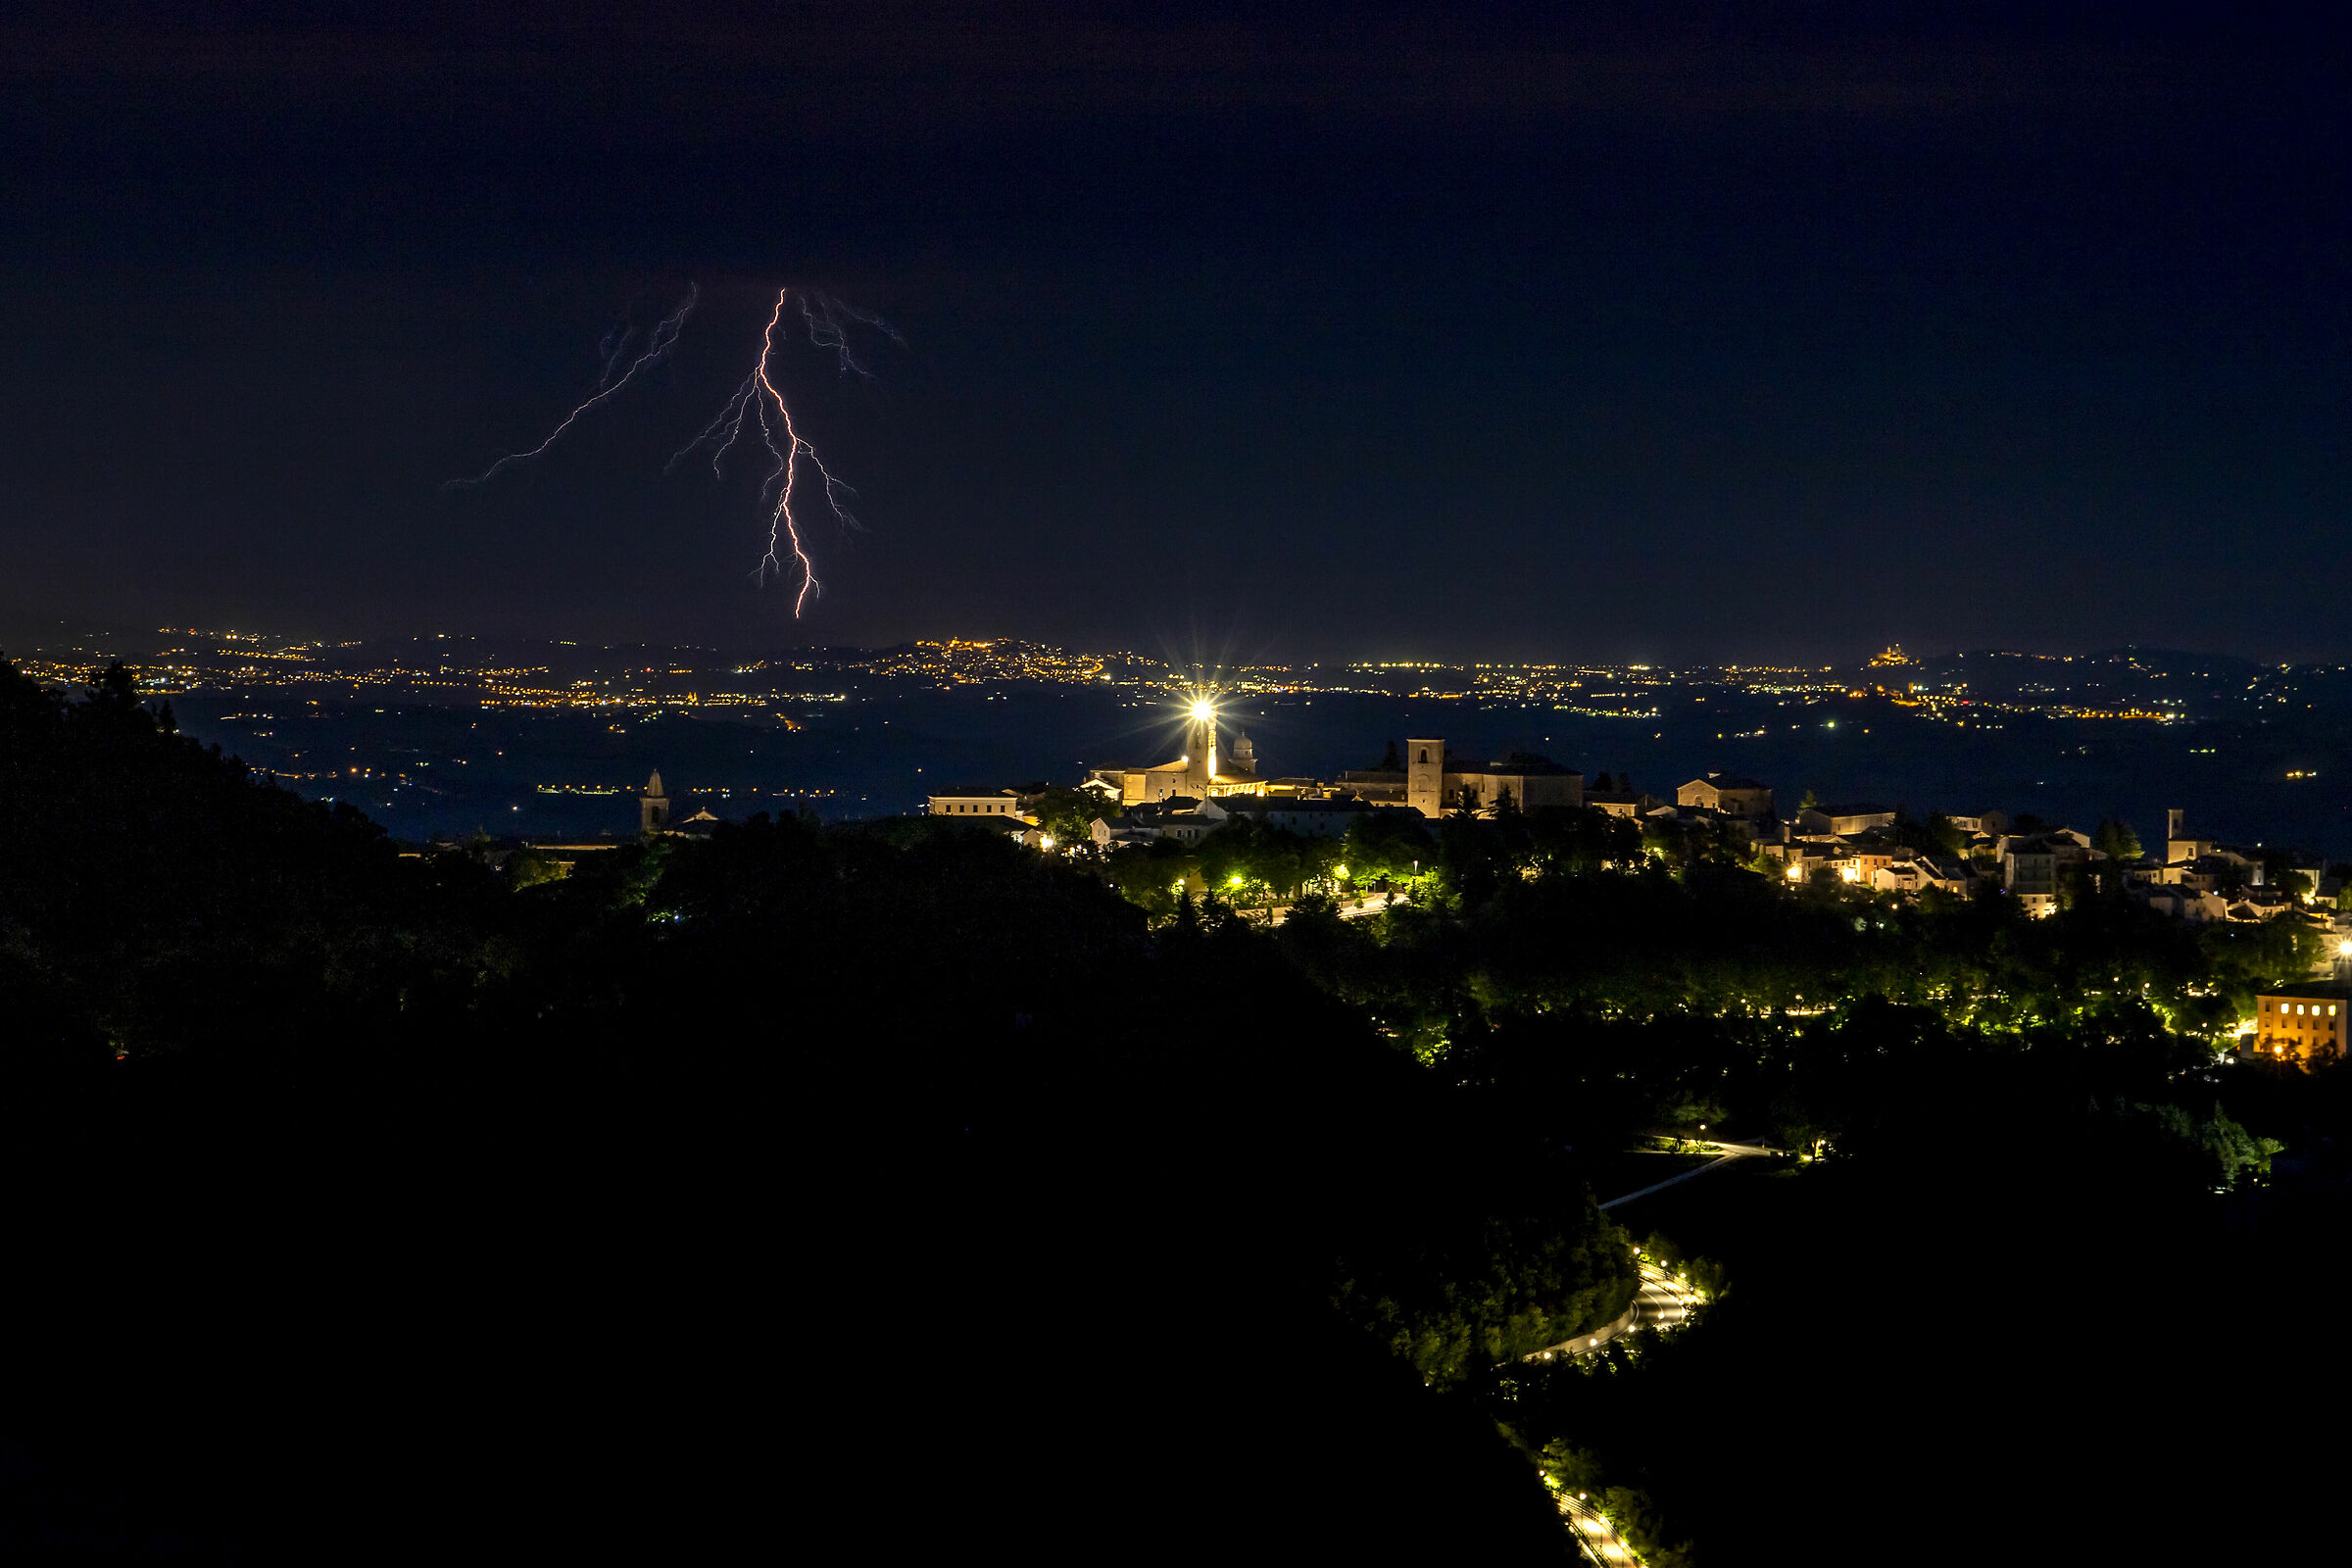 Thunderstorm in the Adriatic...